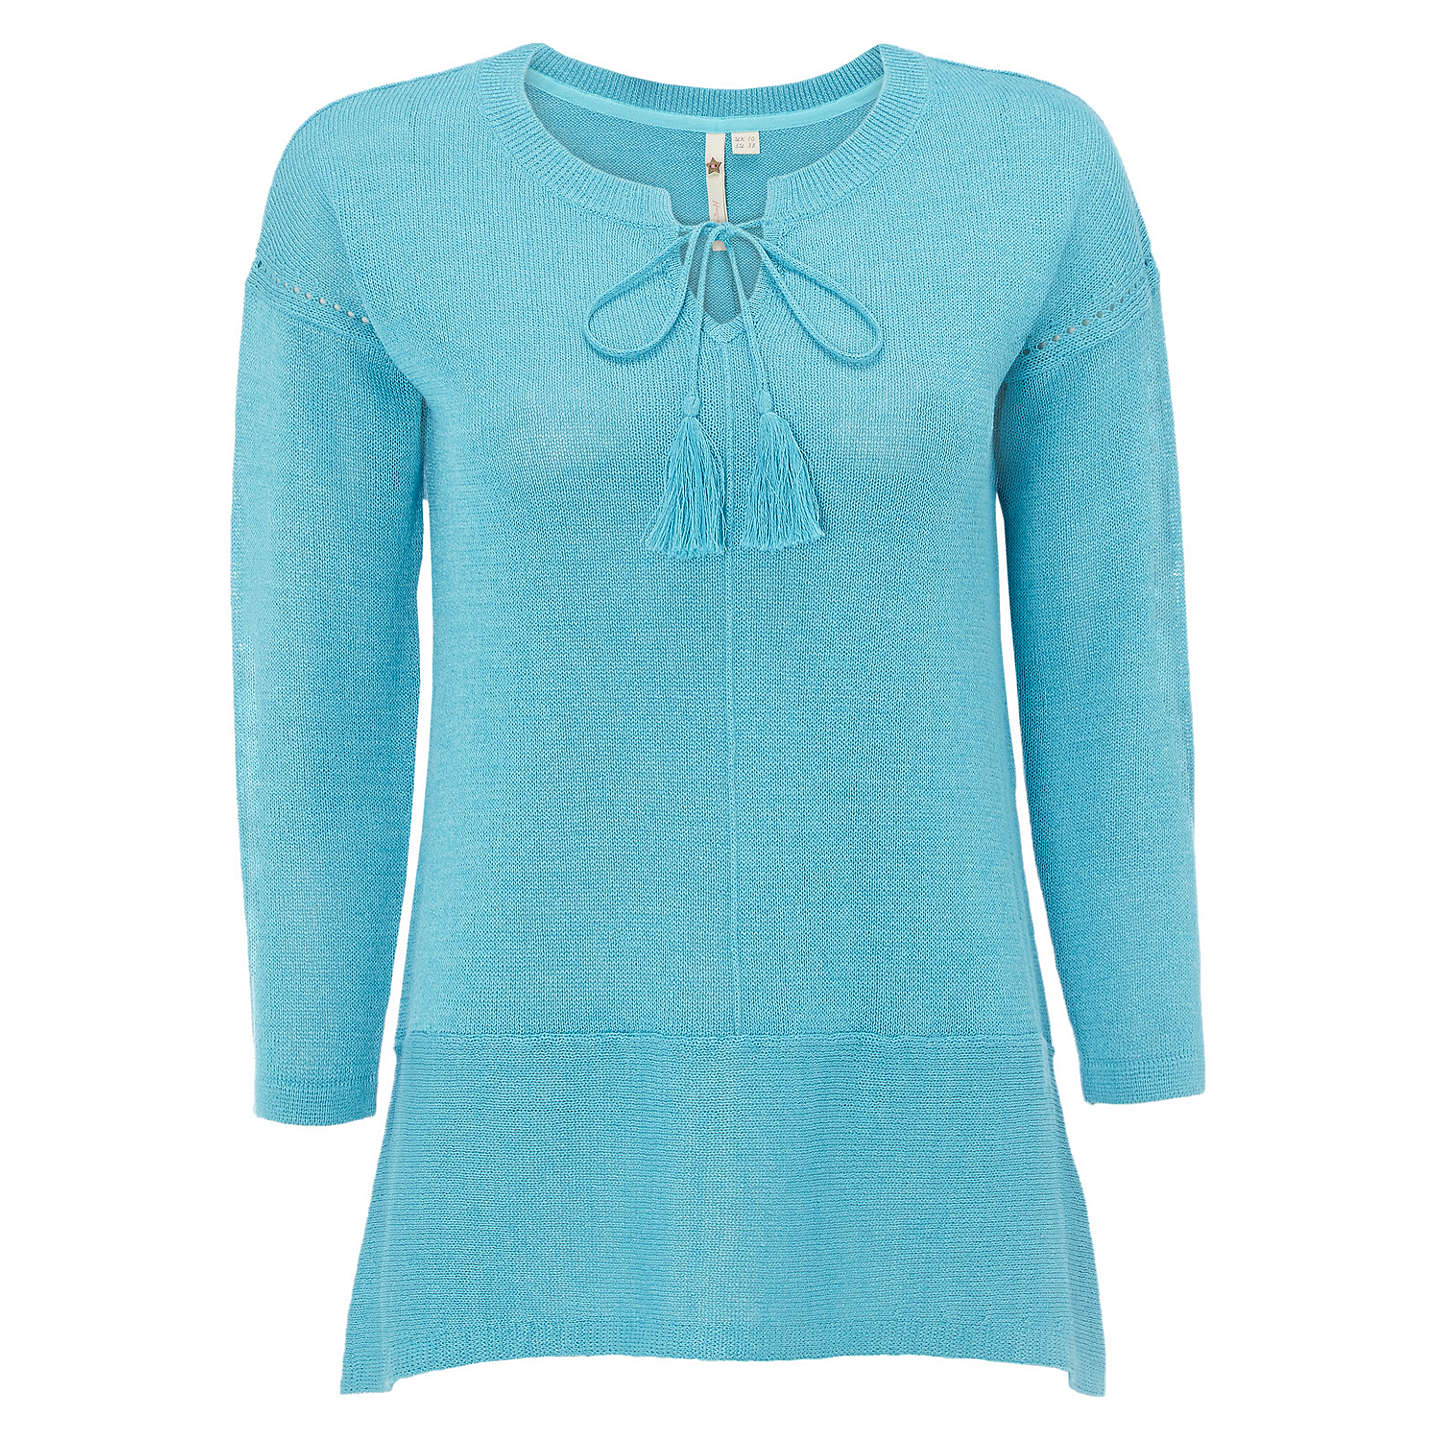 BuyWhite Stuff Tape It Up Knit Top, Turquoise, 6 Online at johnlewis.com